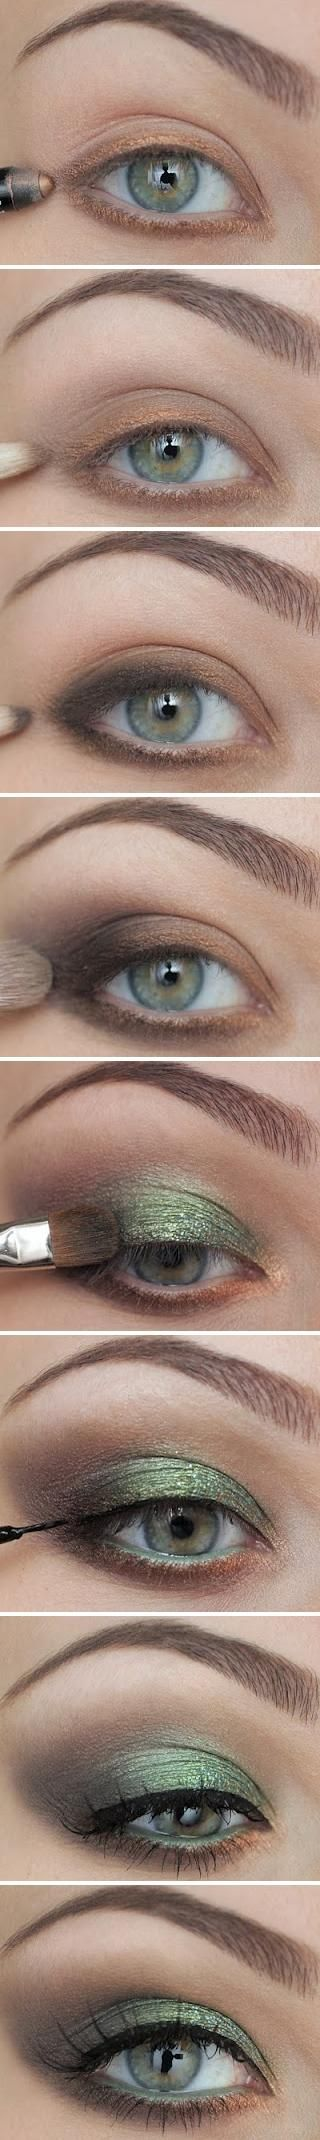 Green smokey eyes...ravishing.